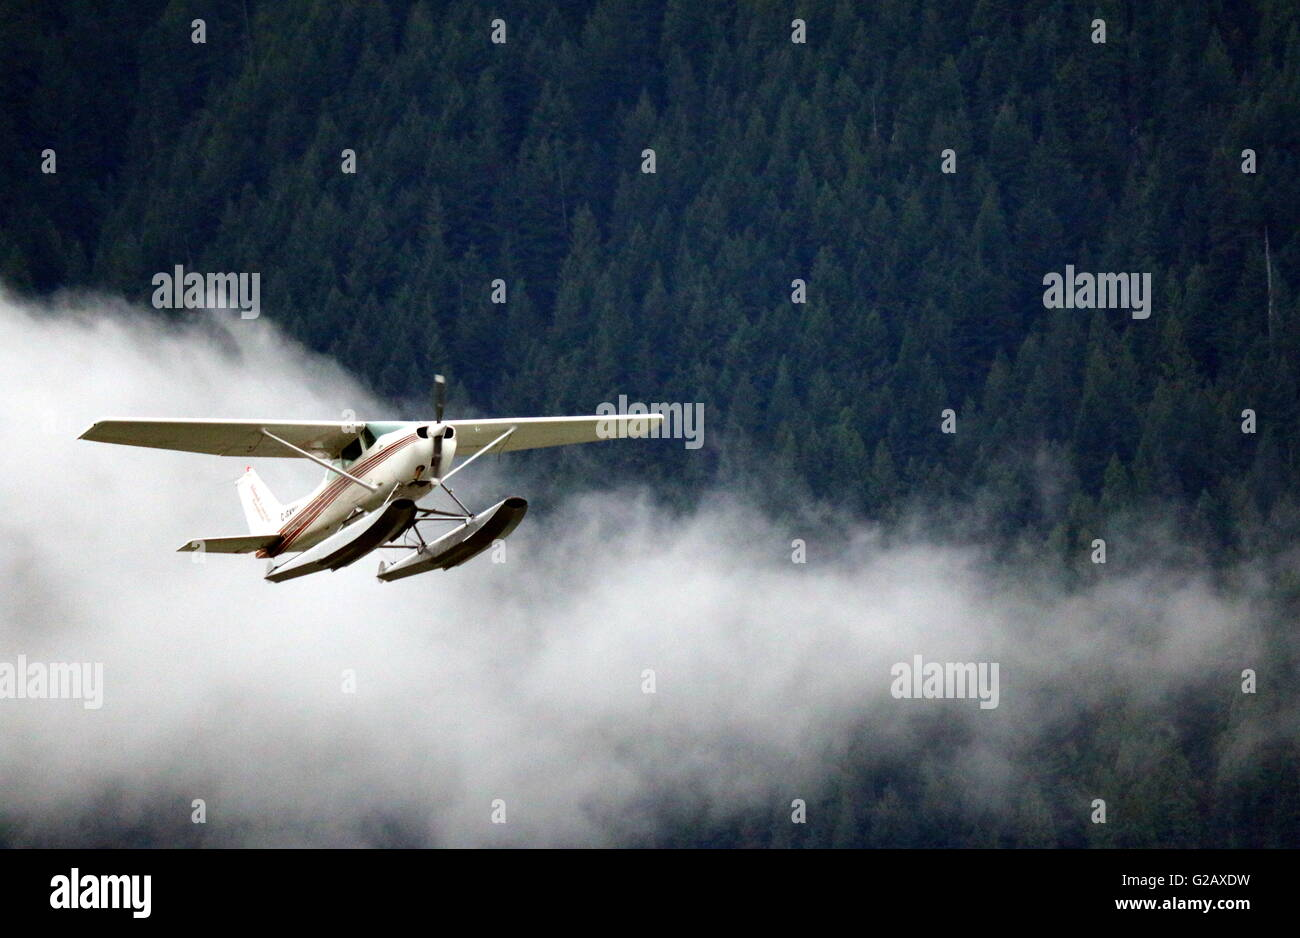 Flying Practice 8 - Cessna Aircraft - Stock Image